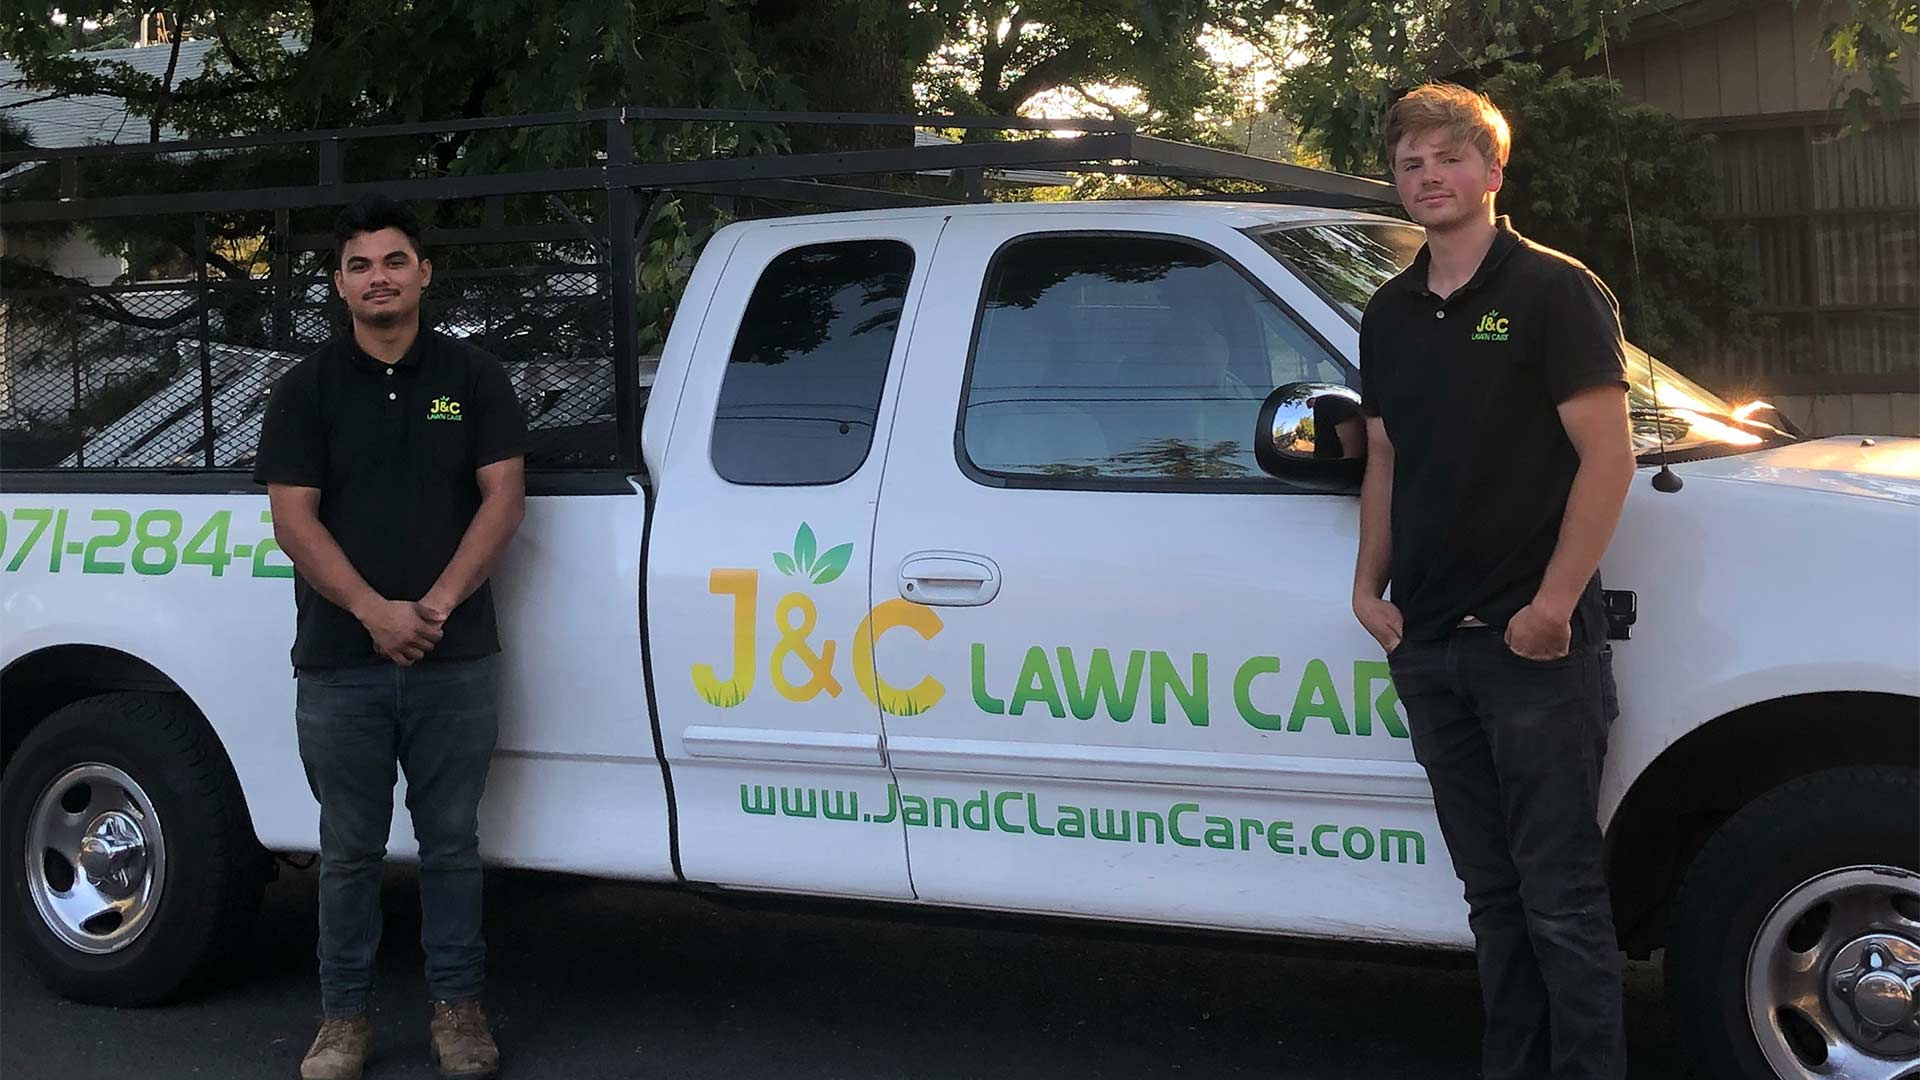 Case Study: J&C Lawn Care